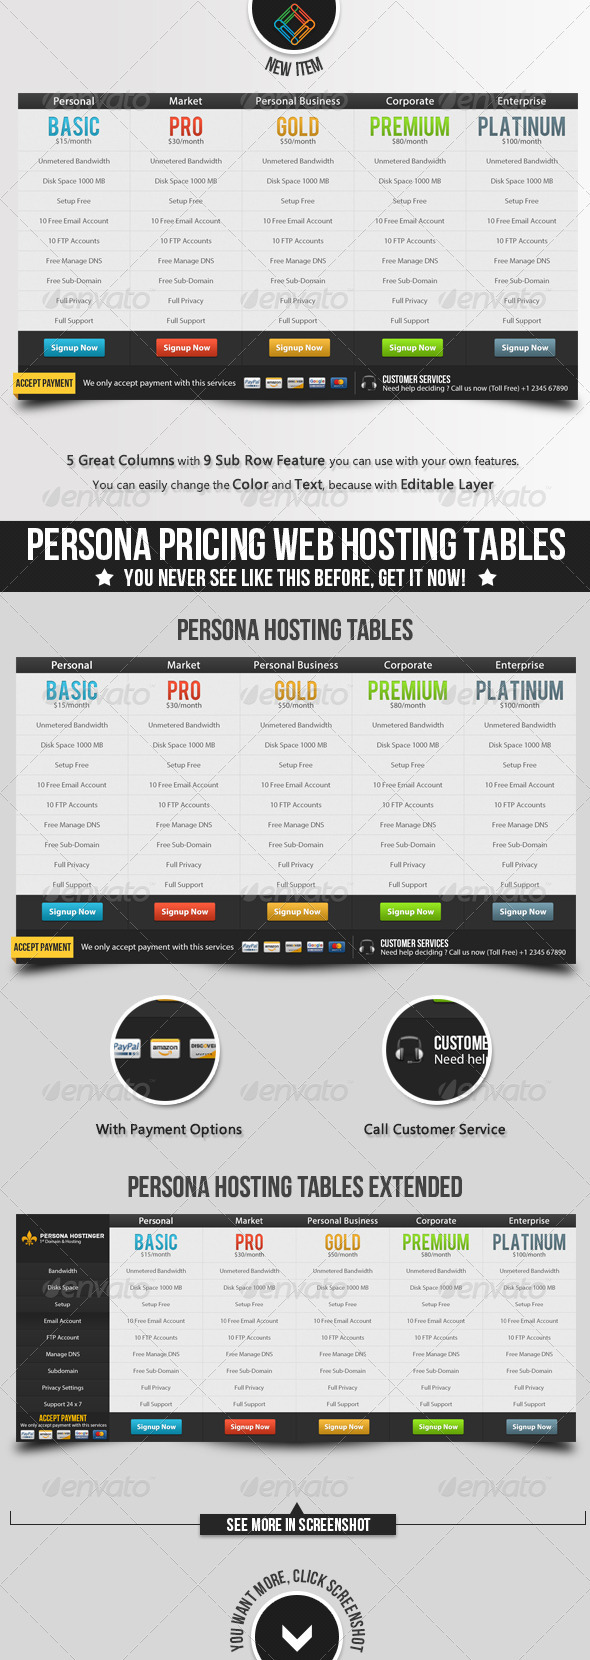 Persona Pricing Web Hosting Tables